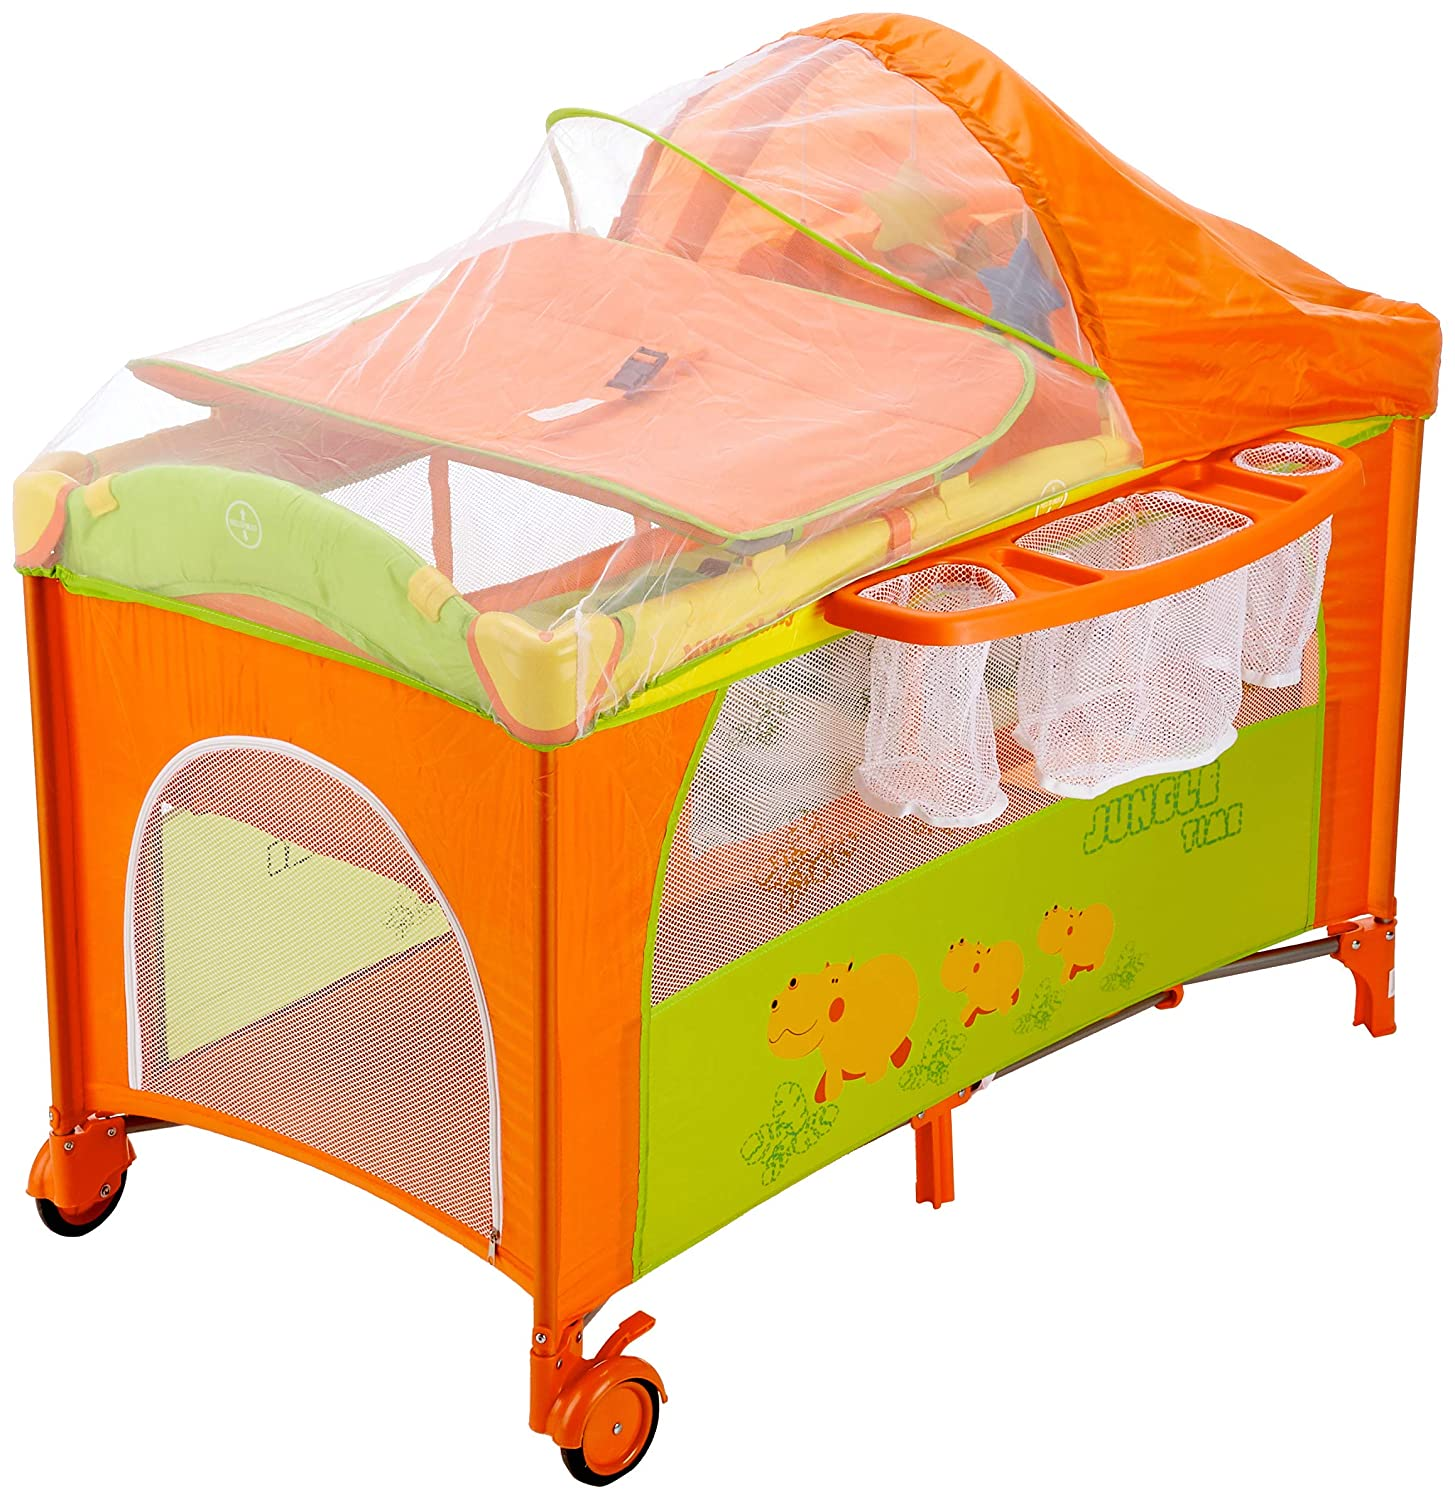 Gris Milly Mally 0172/Viaje Cama Infantil Mirage Deluxe